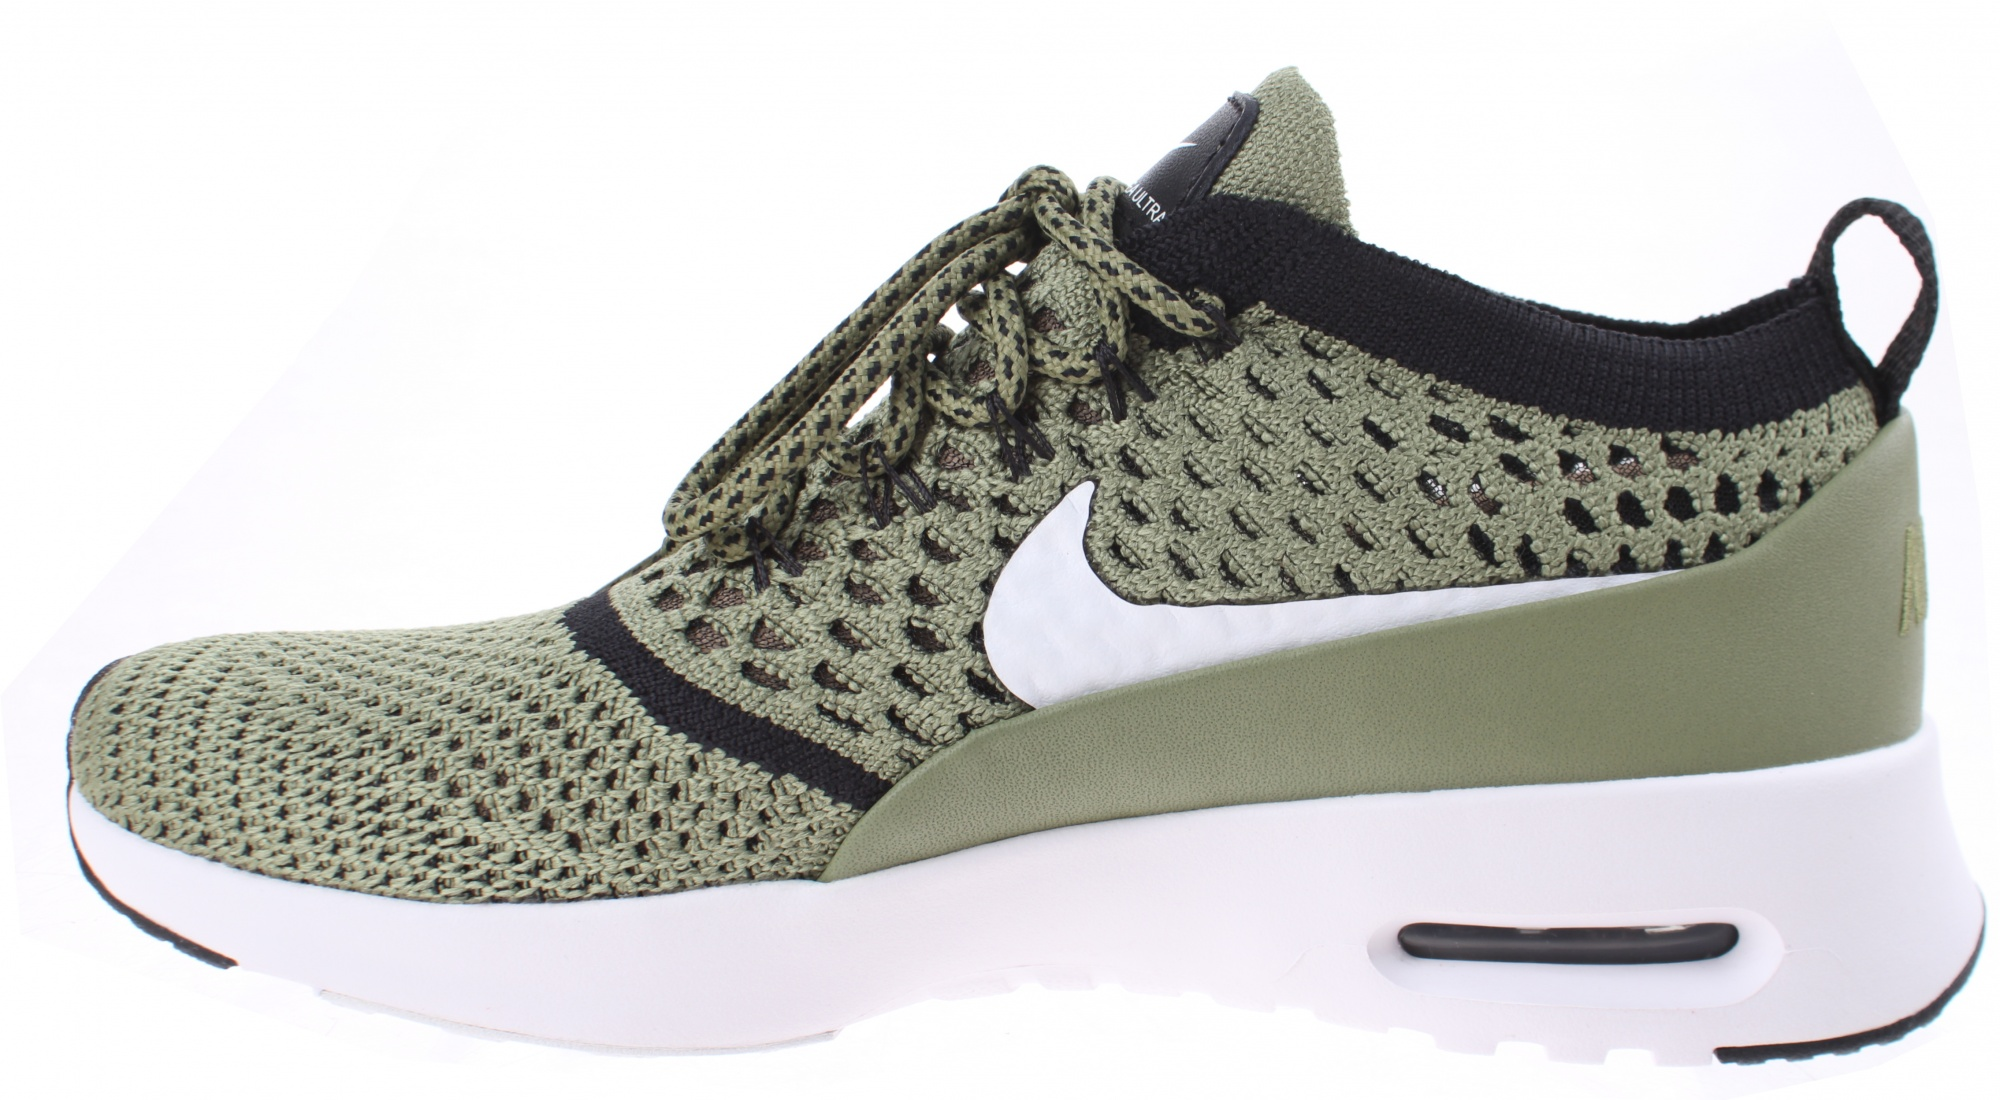 bc5f62878c0 Nike sneakers Air Max Thea Ultra Flyknit dames groen - Internet ...